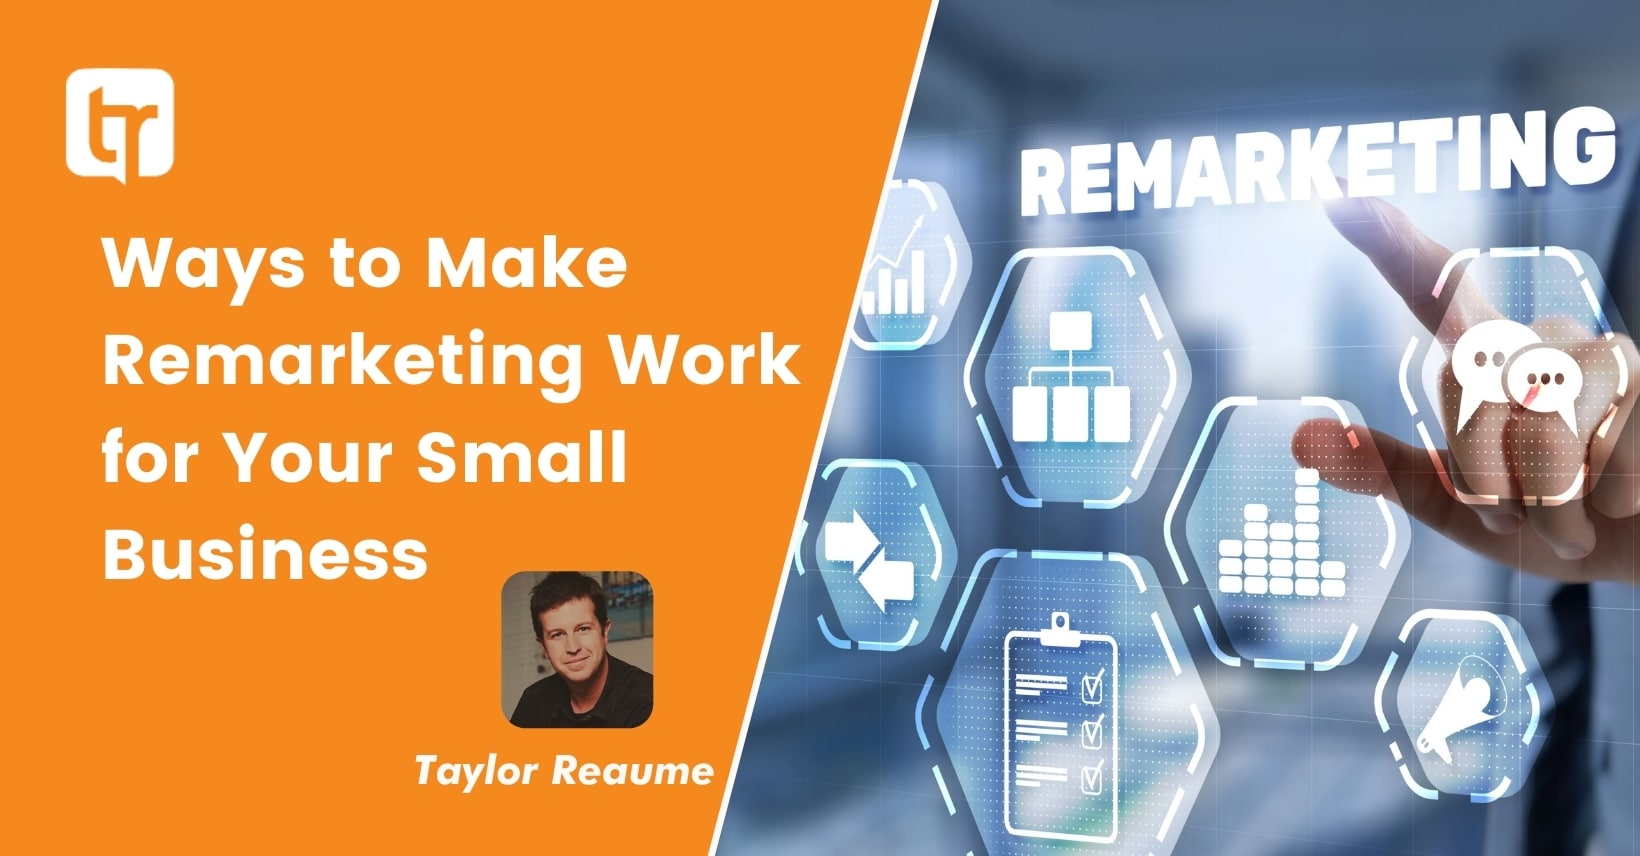 Ways to Make Remarketing Work for Your Small Business